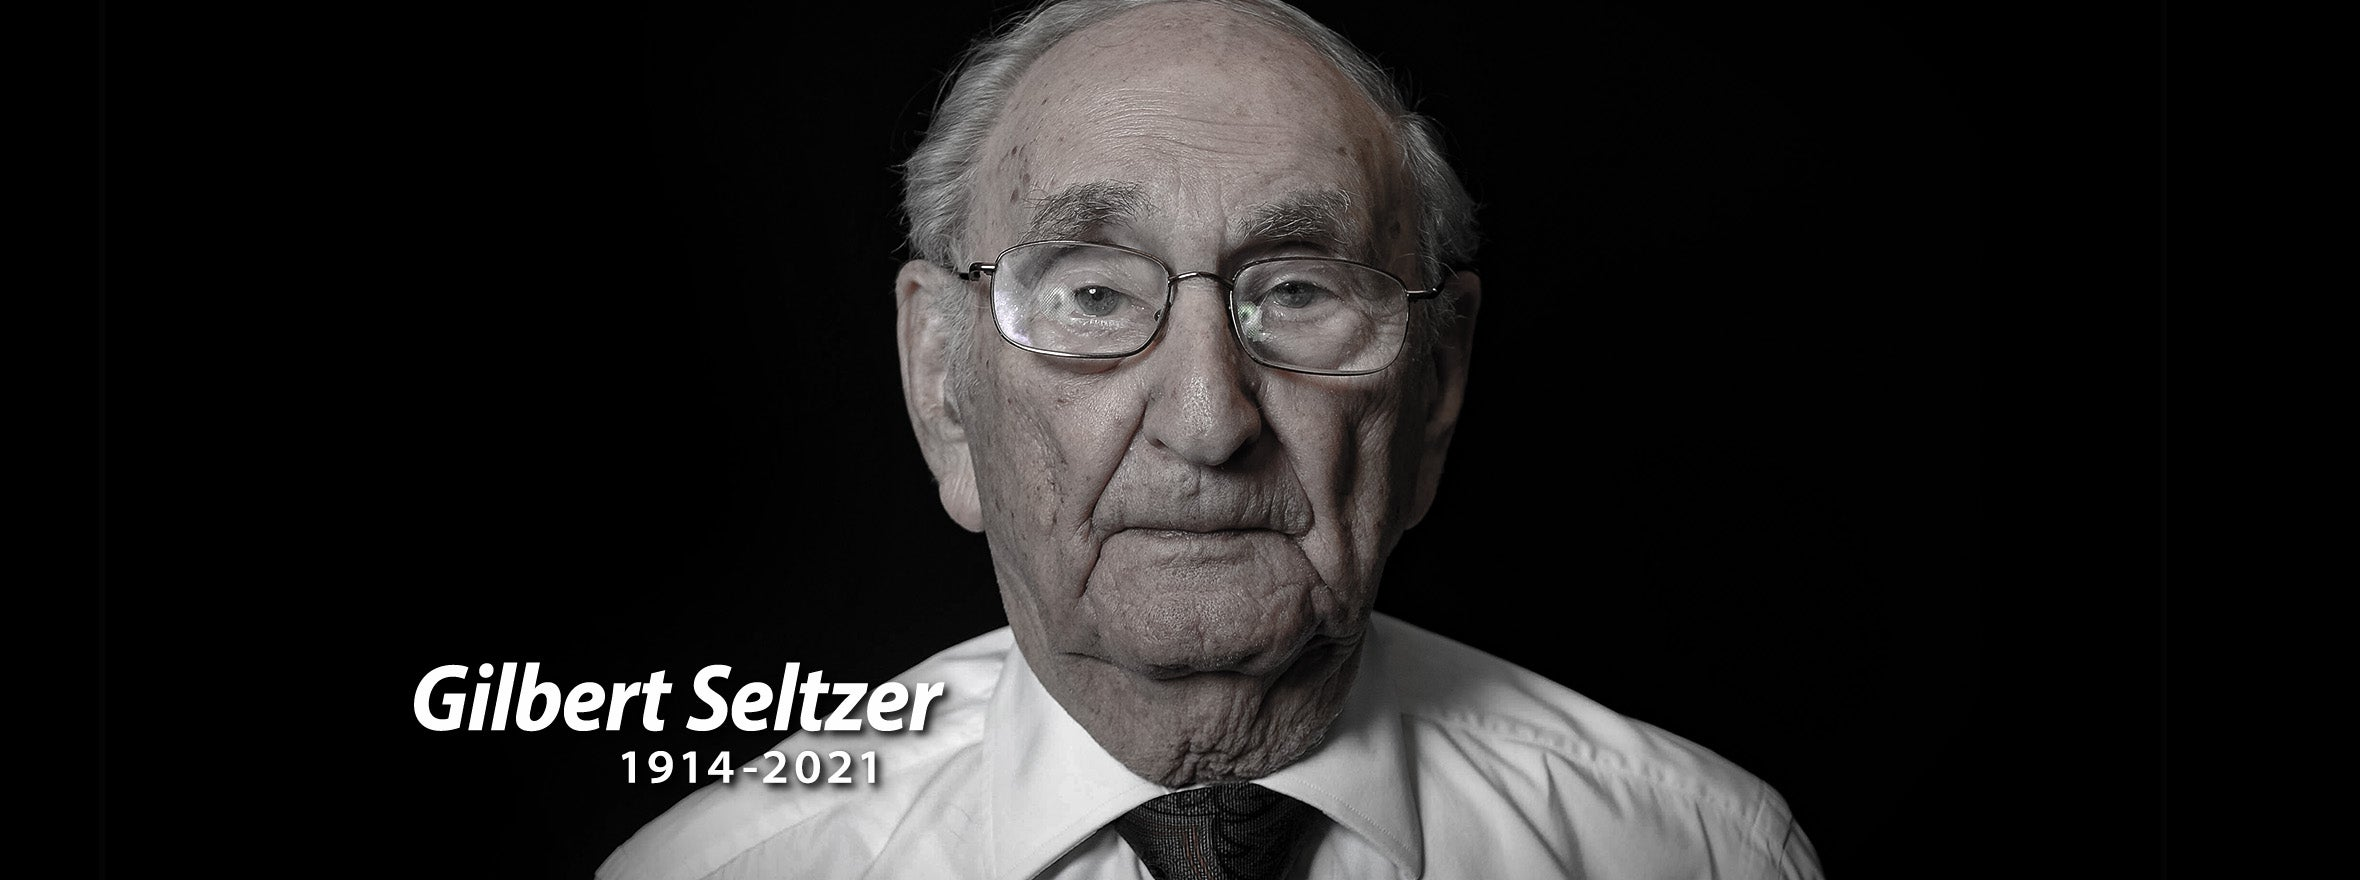 REMEMBERING GILBERT SELTZER, LEAD ARCHITECT OF AUD